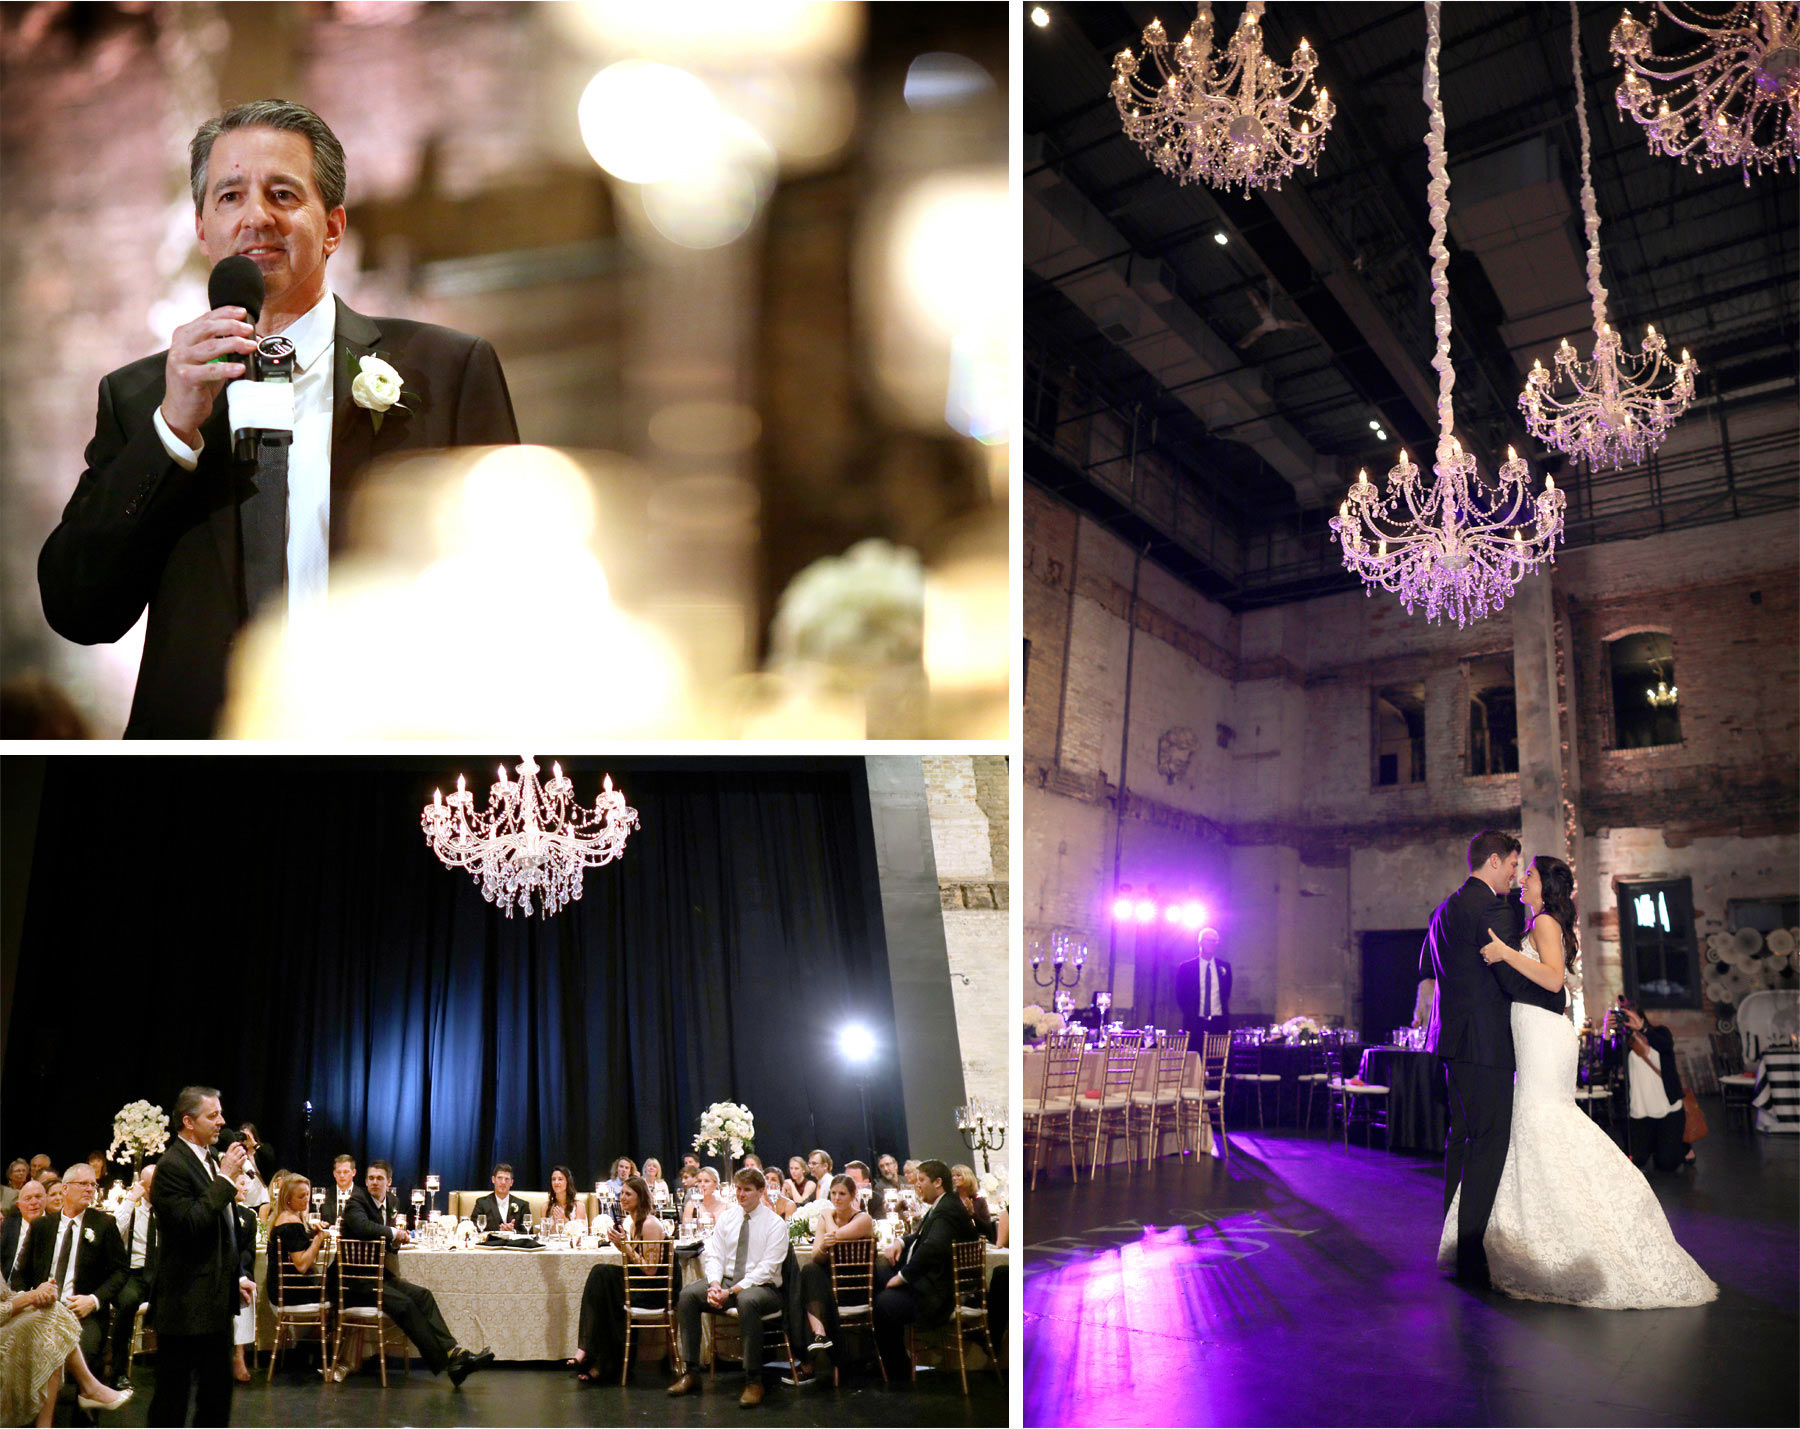 21-Minneapolis-Minnesota-Wedding-Photographer-by-Andrew-Vick-Photography-Aria-Spring-Reception-Bride-Groom-Speeches-Father-Parents-Dance-Alex-and-Andy.jpg